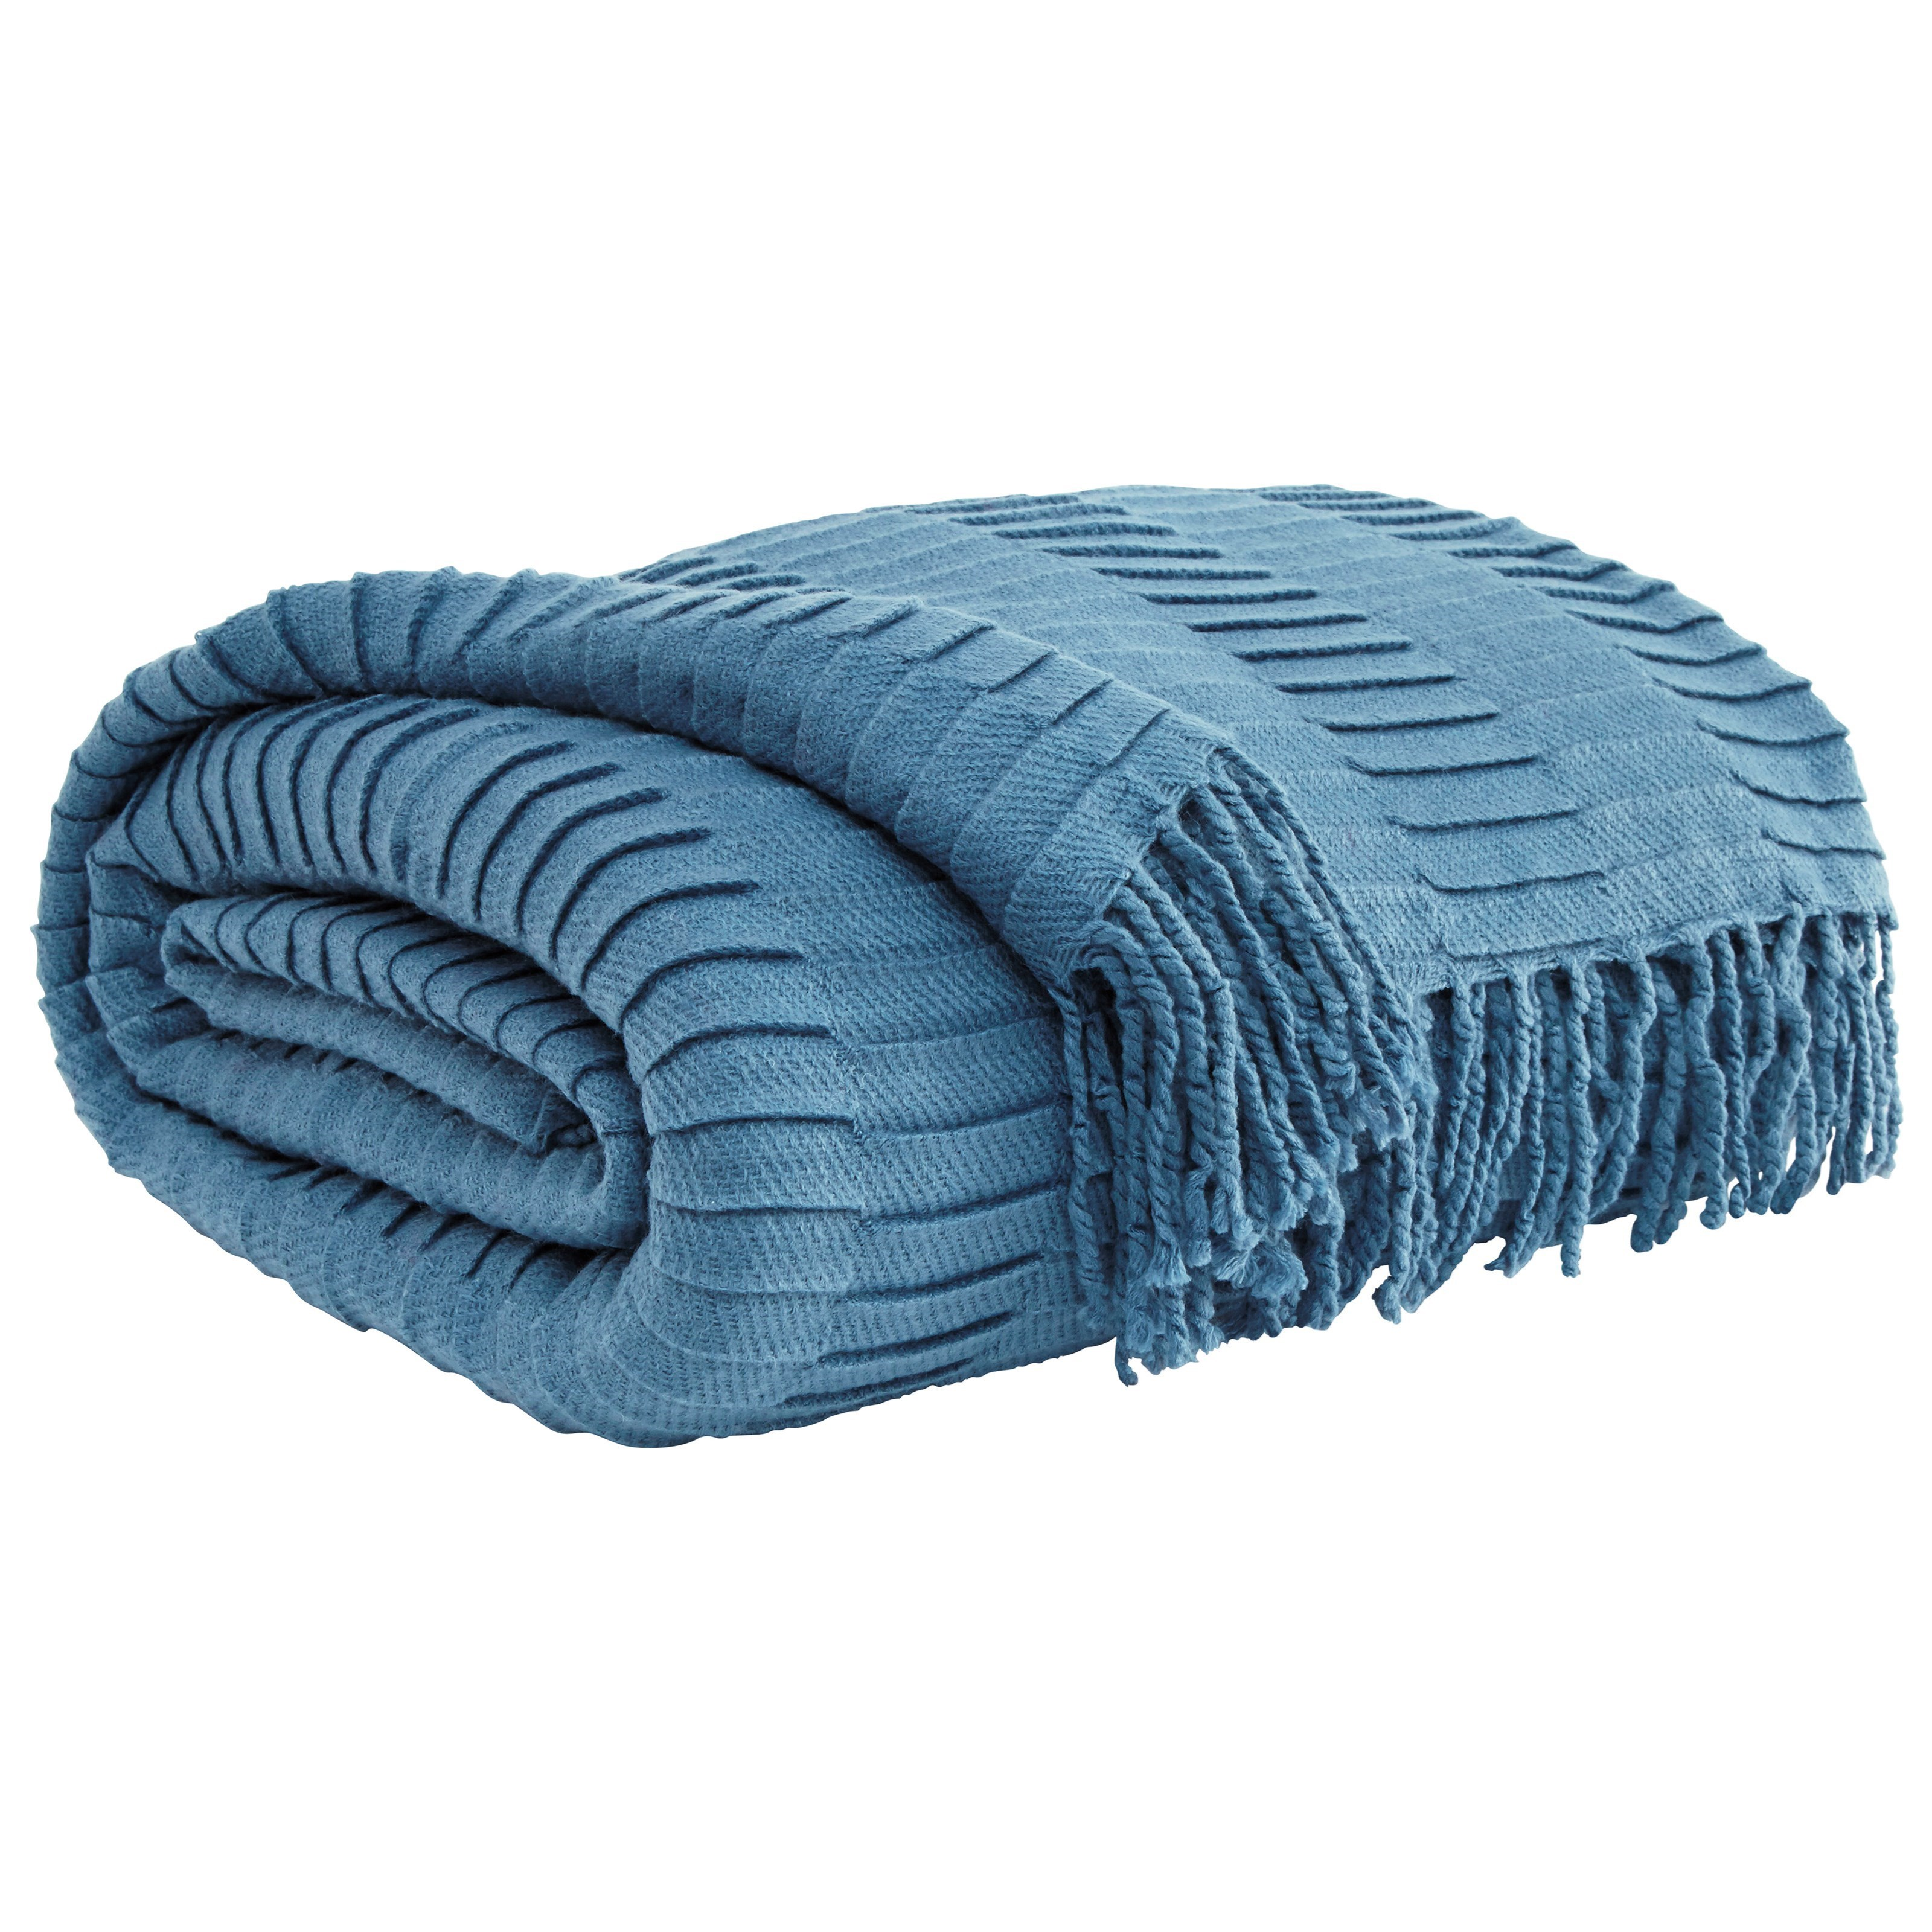 Signature Design By Ashley Throws Mendez Blue Throw